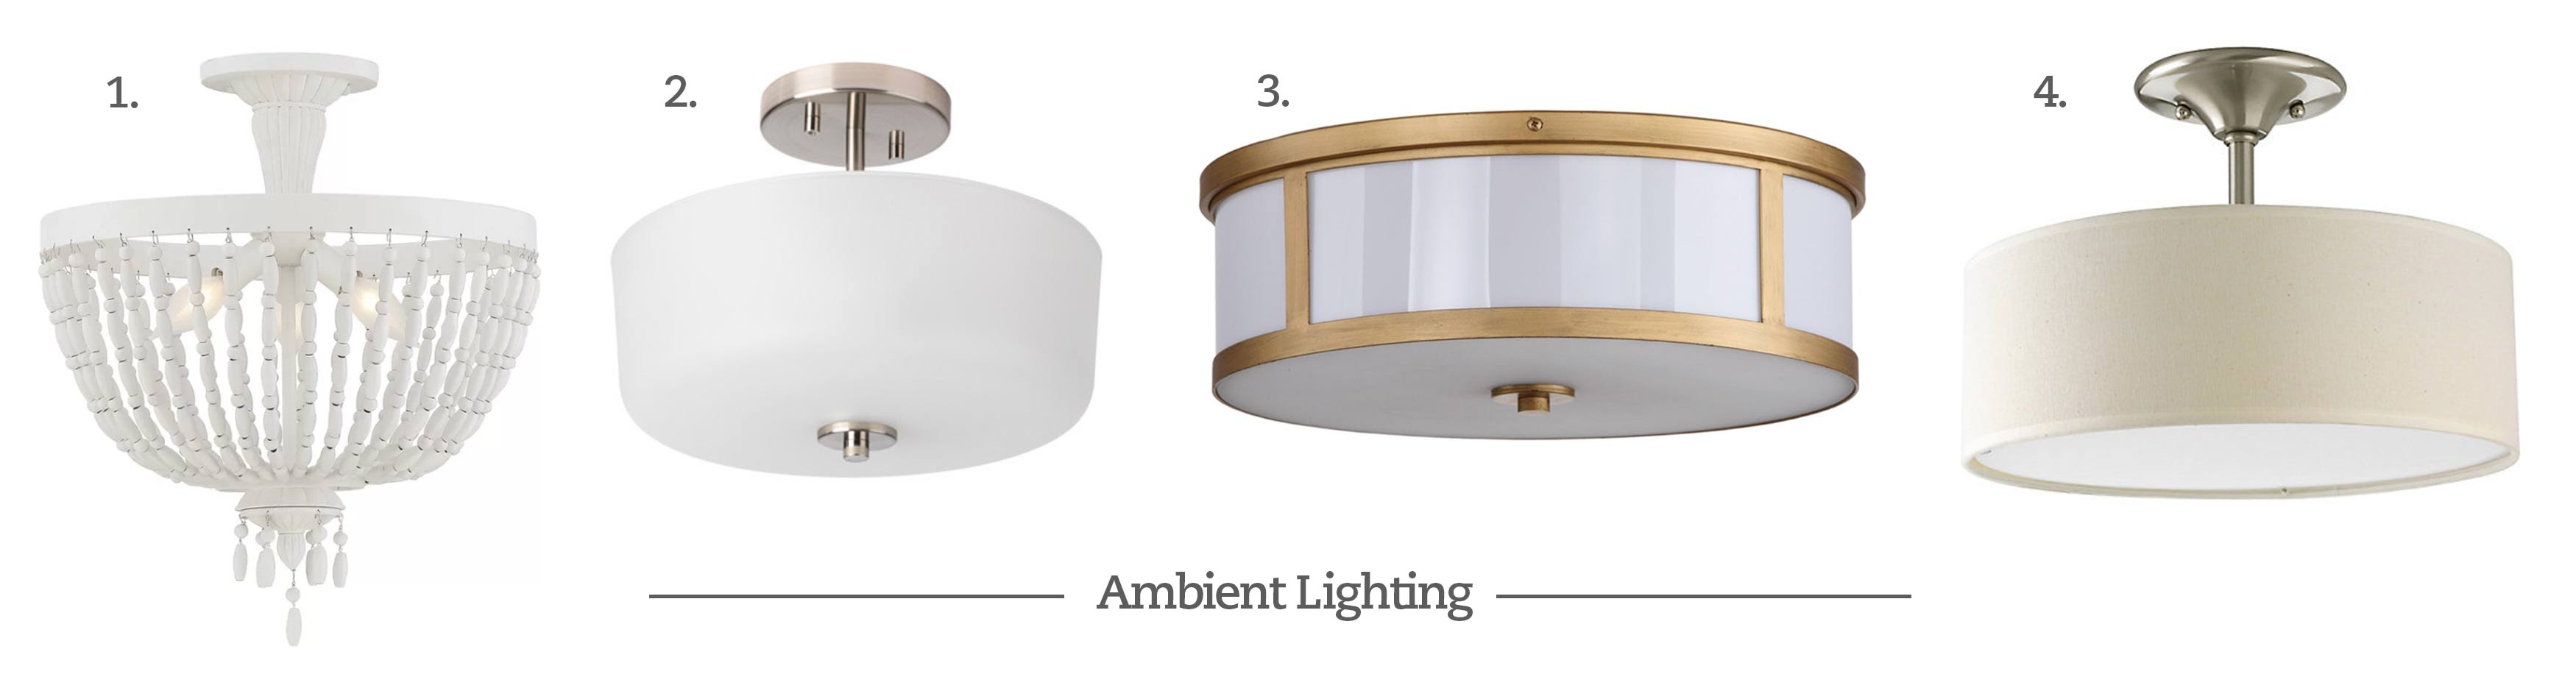 Power Your Reno 4 Types of Lighting & 16 Fabulous Light Options